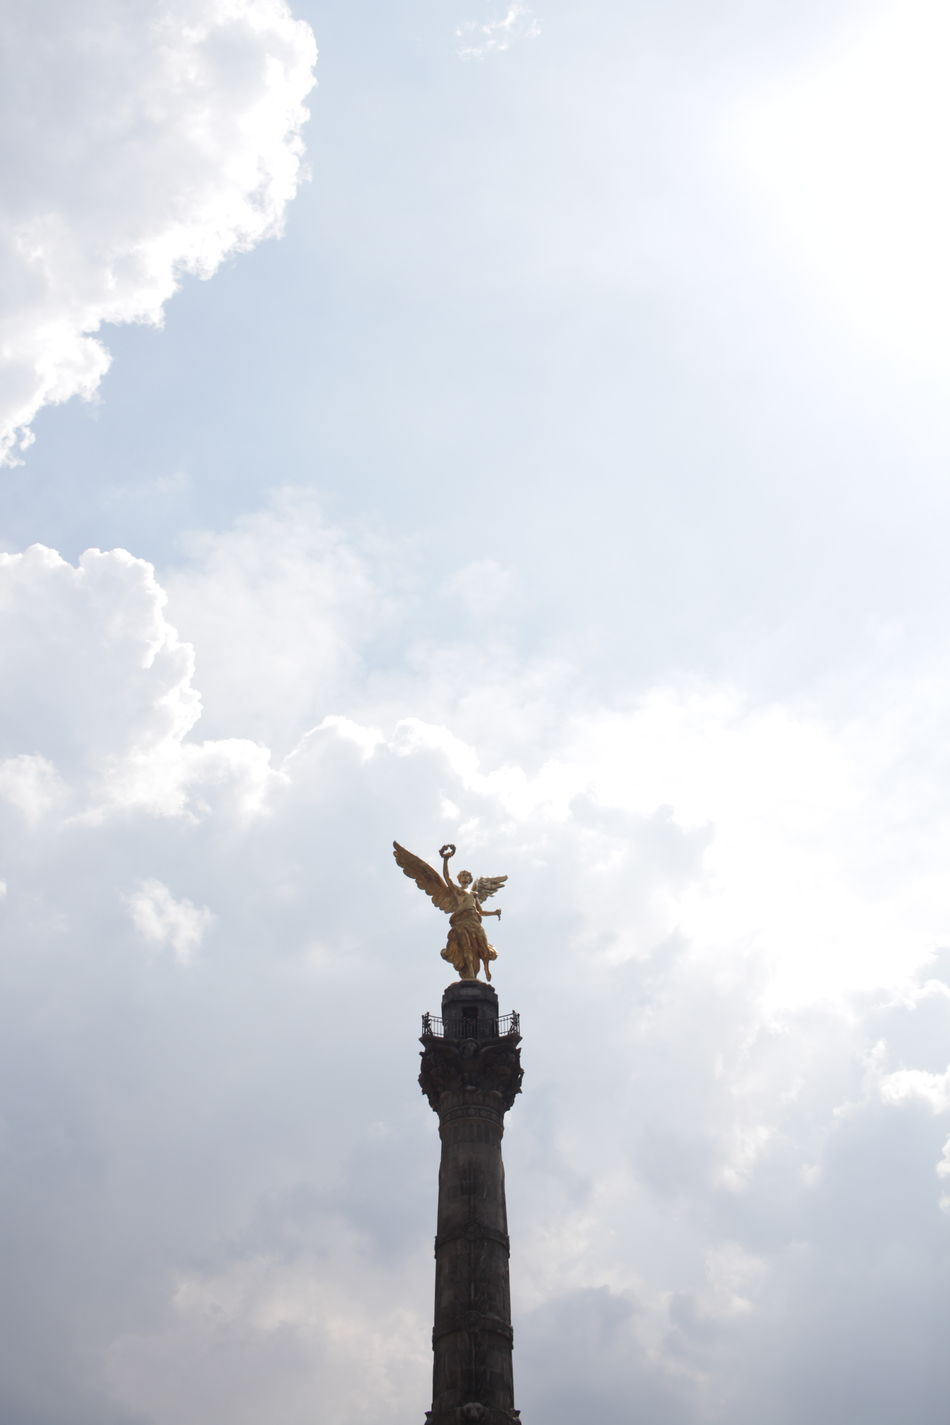 the angel de independecia in mexico City Architectural Column Art Art And Craft Capital Cities  Cloud Cloud - Sky Cloudy Creativity Culture Day Famous Place Human Representation Indepencia Independence Low Angle View Monument No People Outdoors Sculpture Sky Statue Statue Of Liberty Tourism Travel Destinations